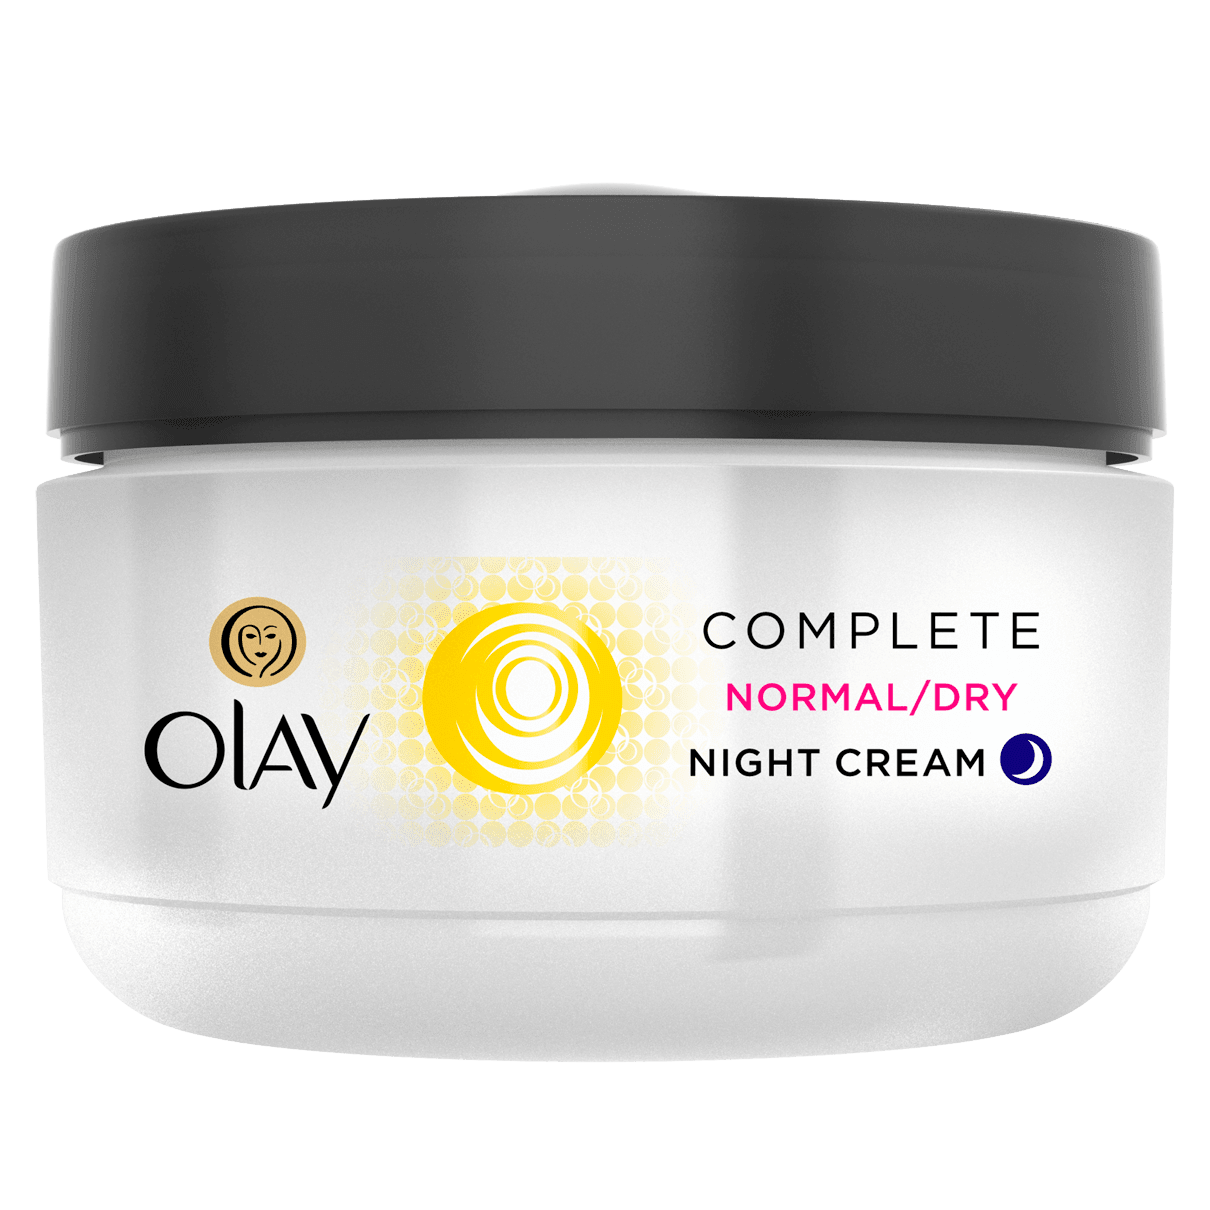 Essentials Complete Care Night Cream for Normal/Dry/Combination Skin